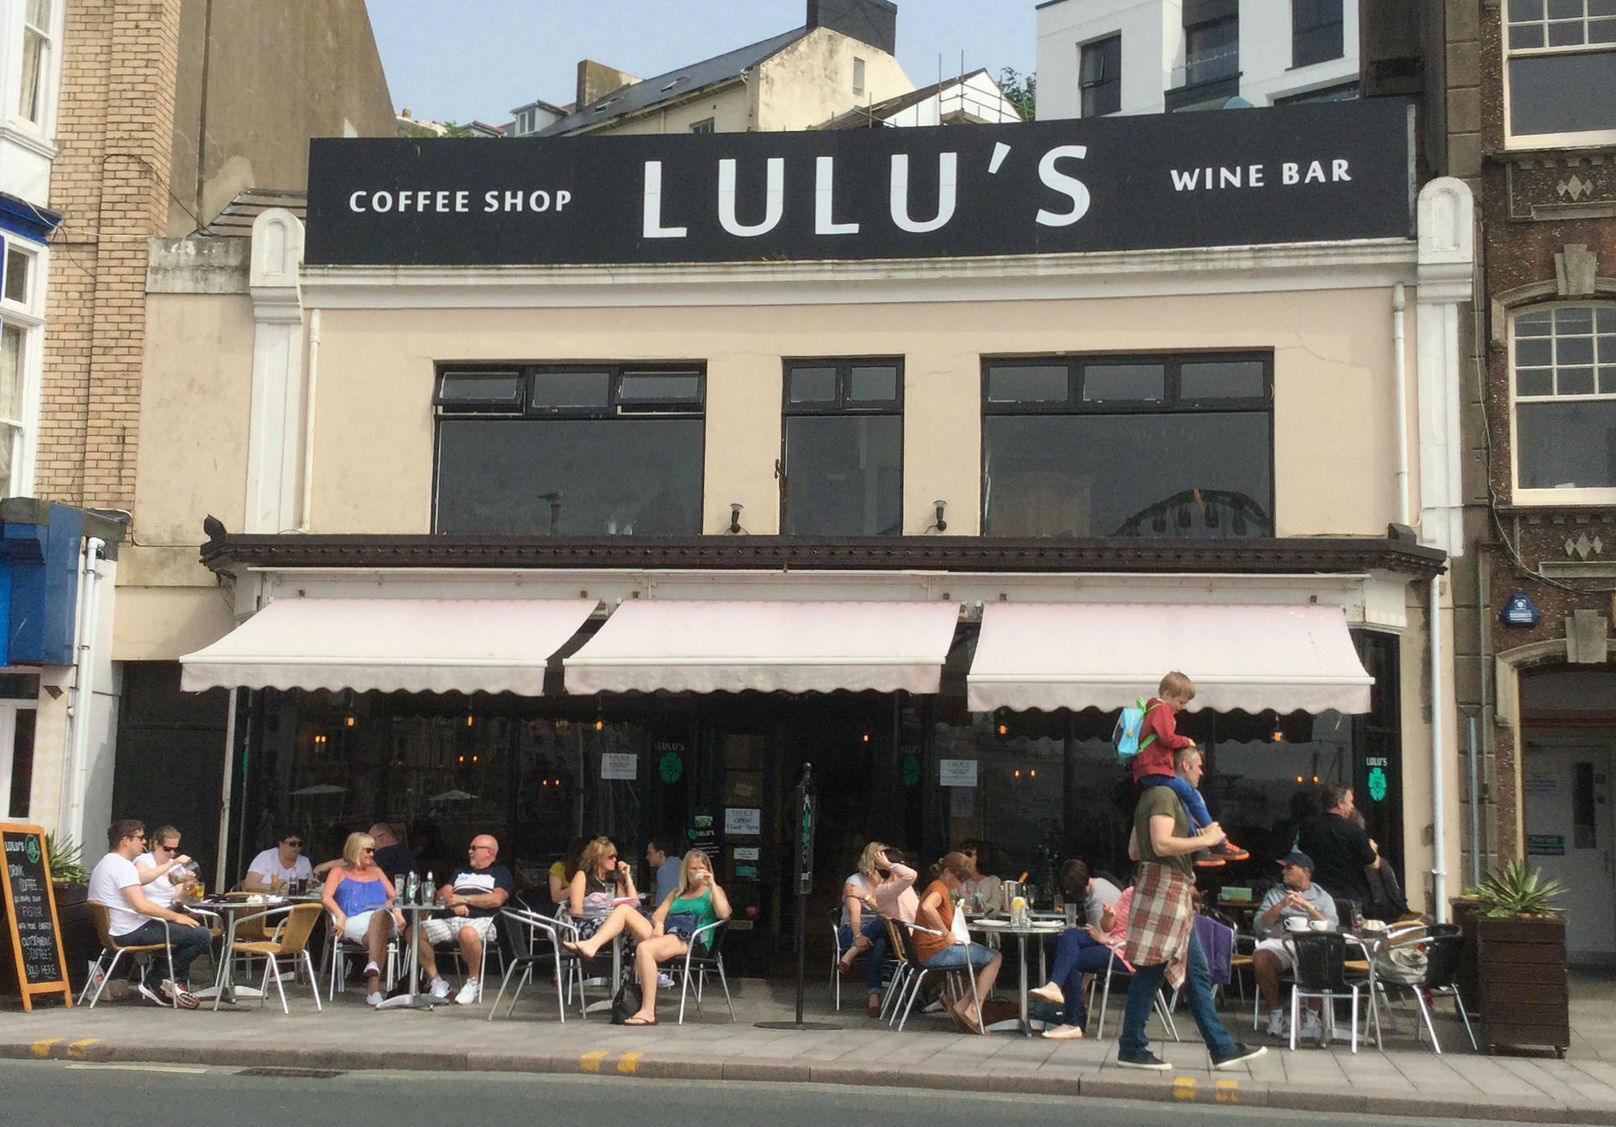 Lulus cafe and wine bar - dog friendly place to eat and drink in Torquay